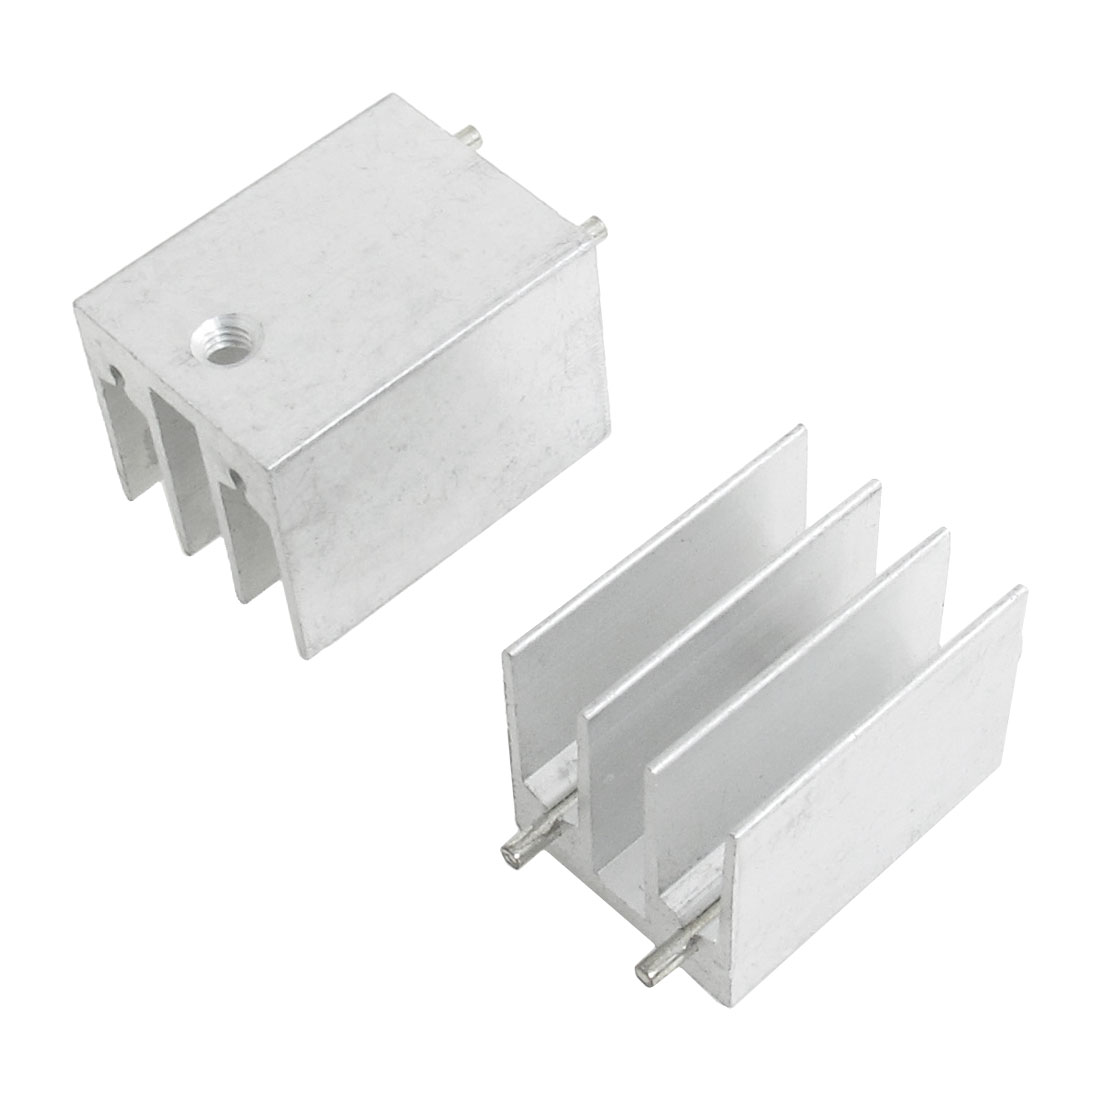 2 Pcs 16x16x22mm Heatsink Heat Diffuse Aluminium Cooling Fin